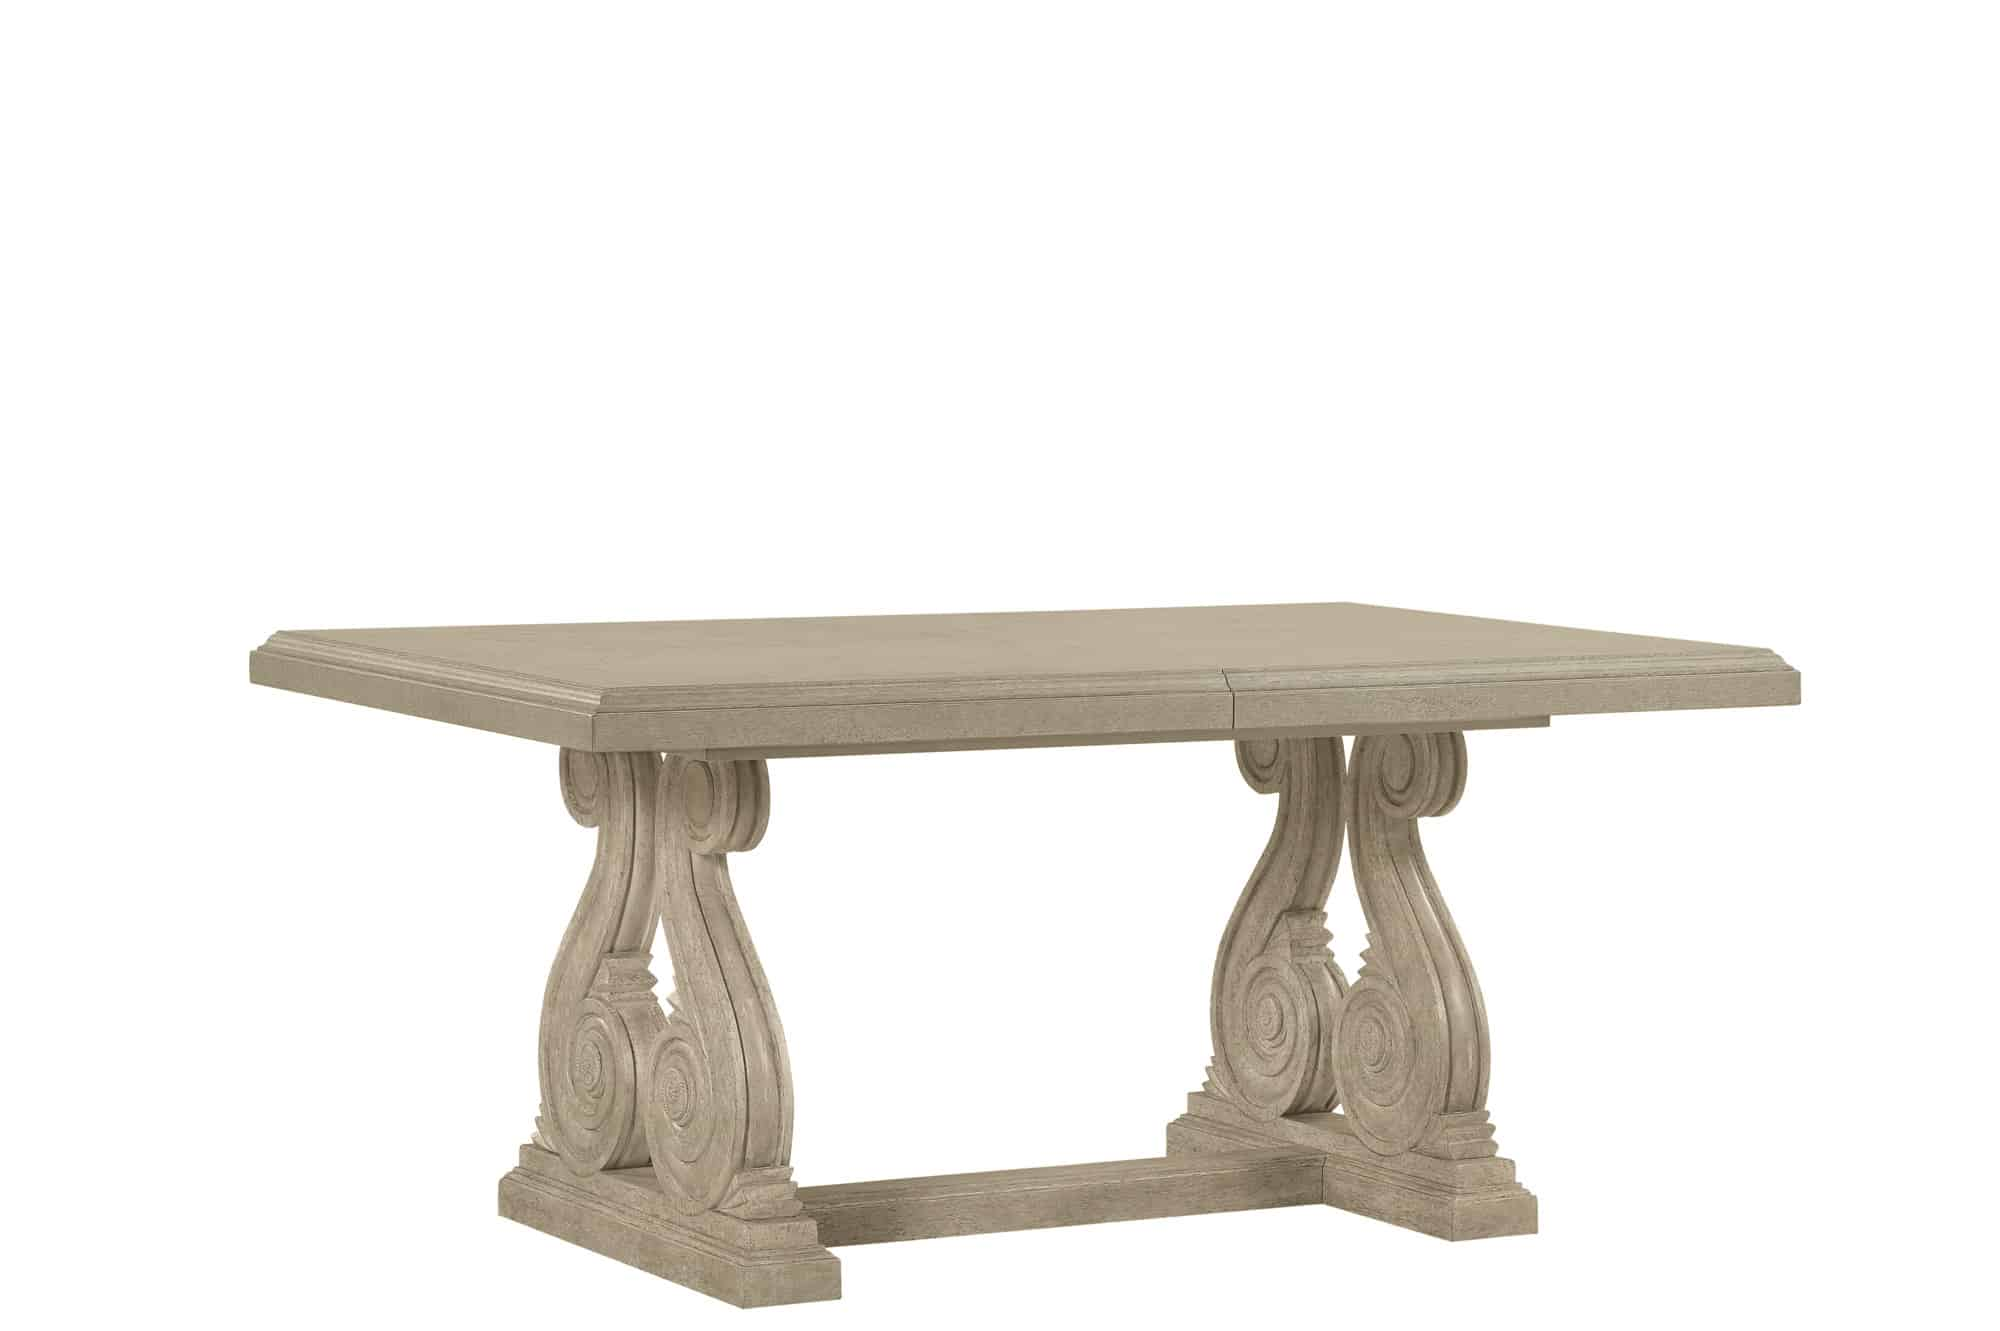 Arch Salvage - Rectangular Dining Table - Parch